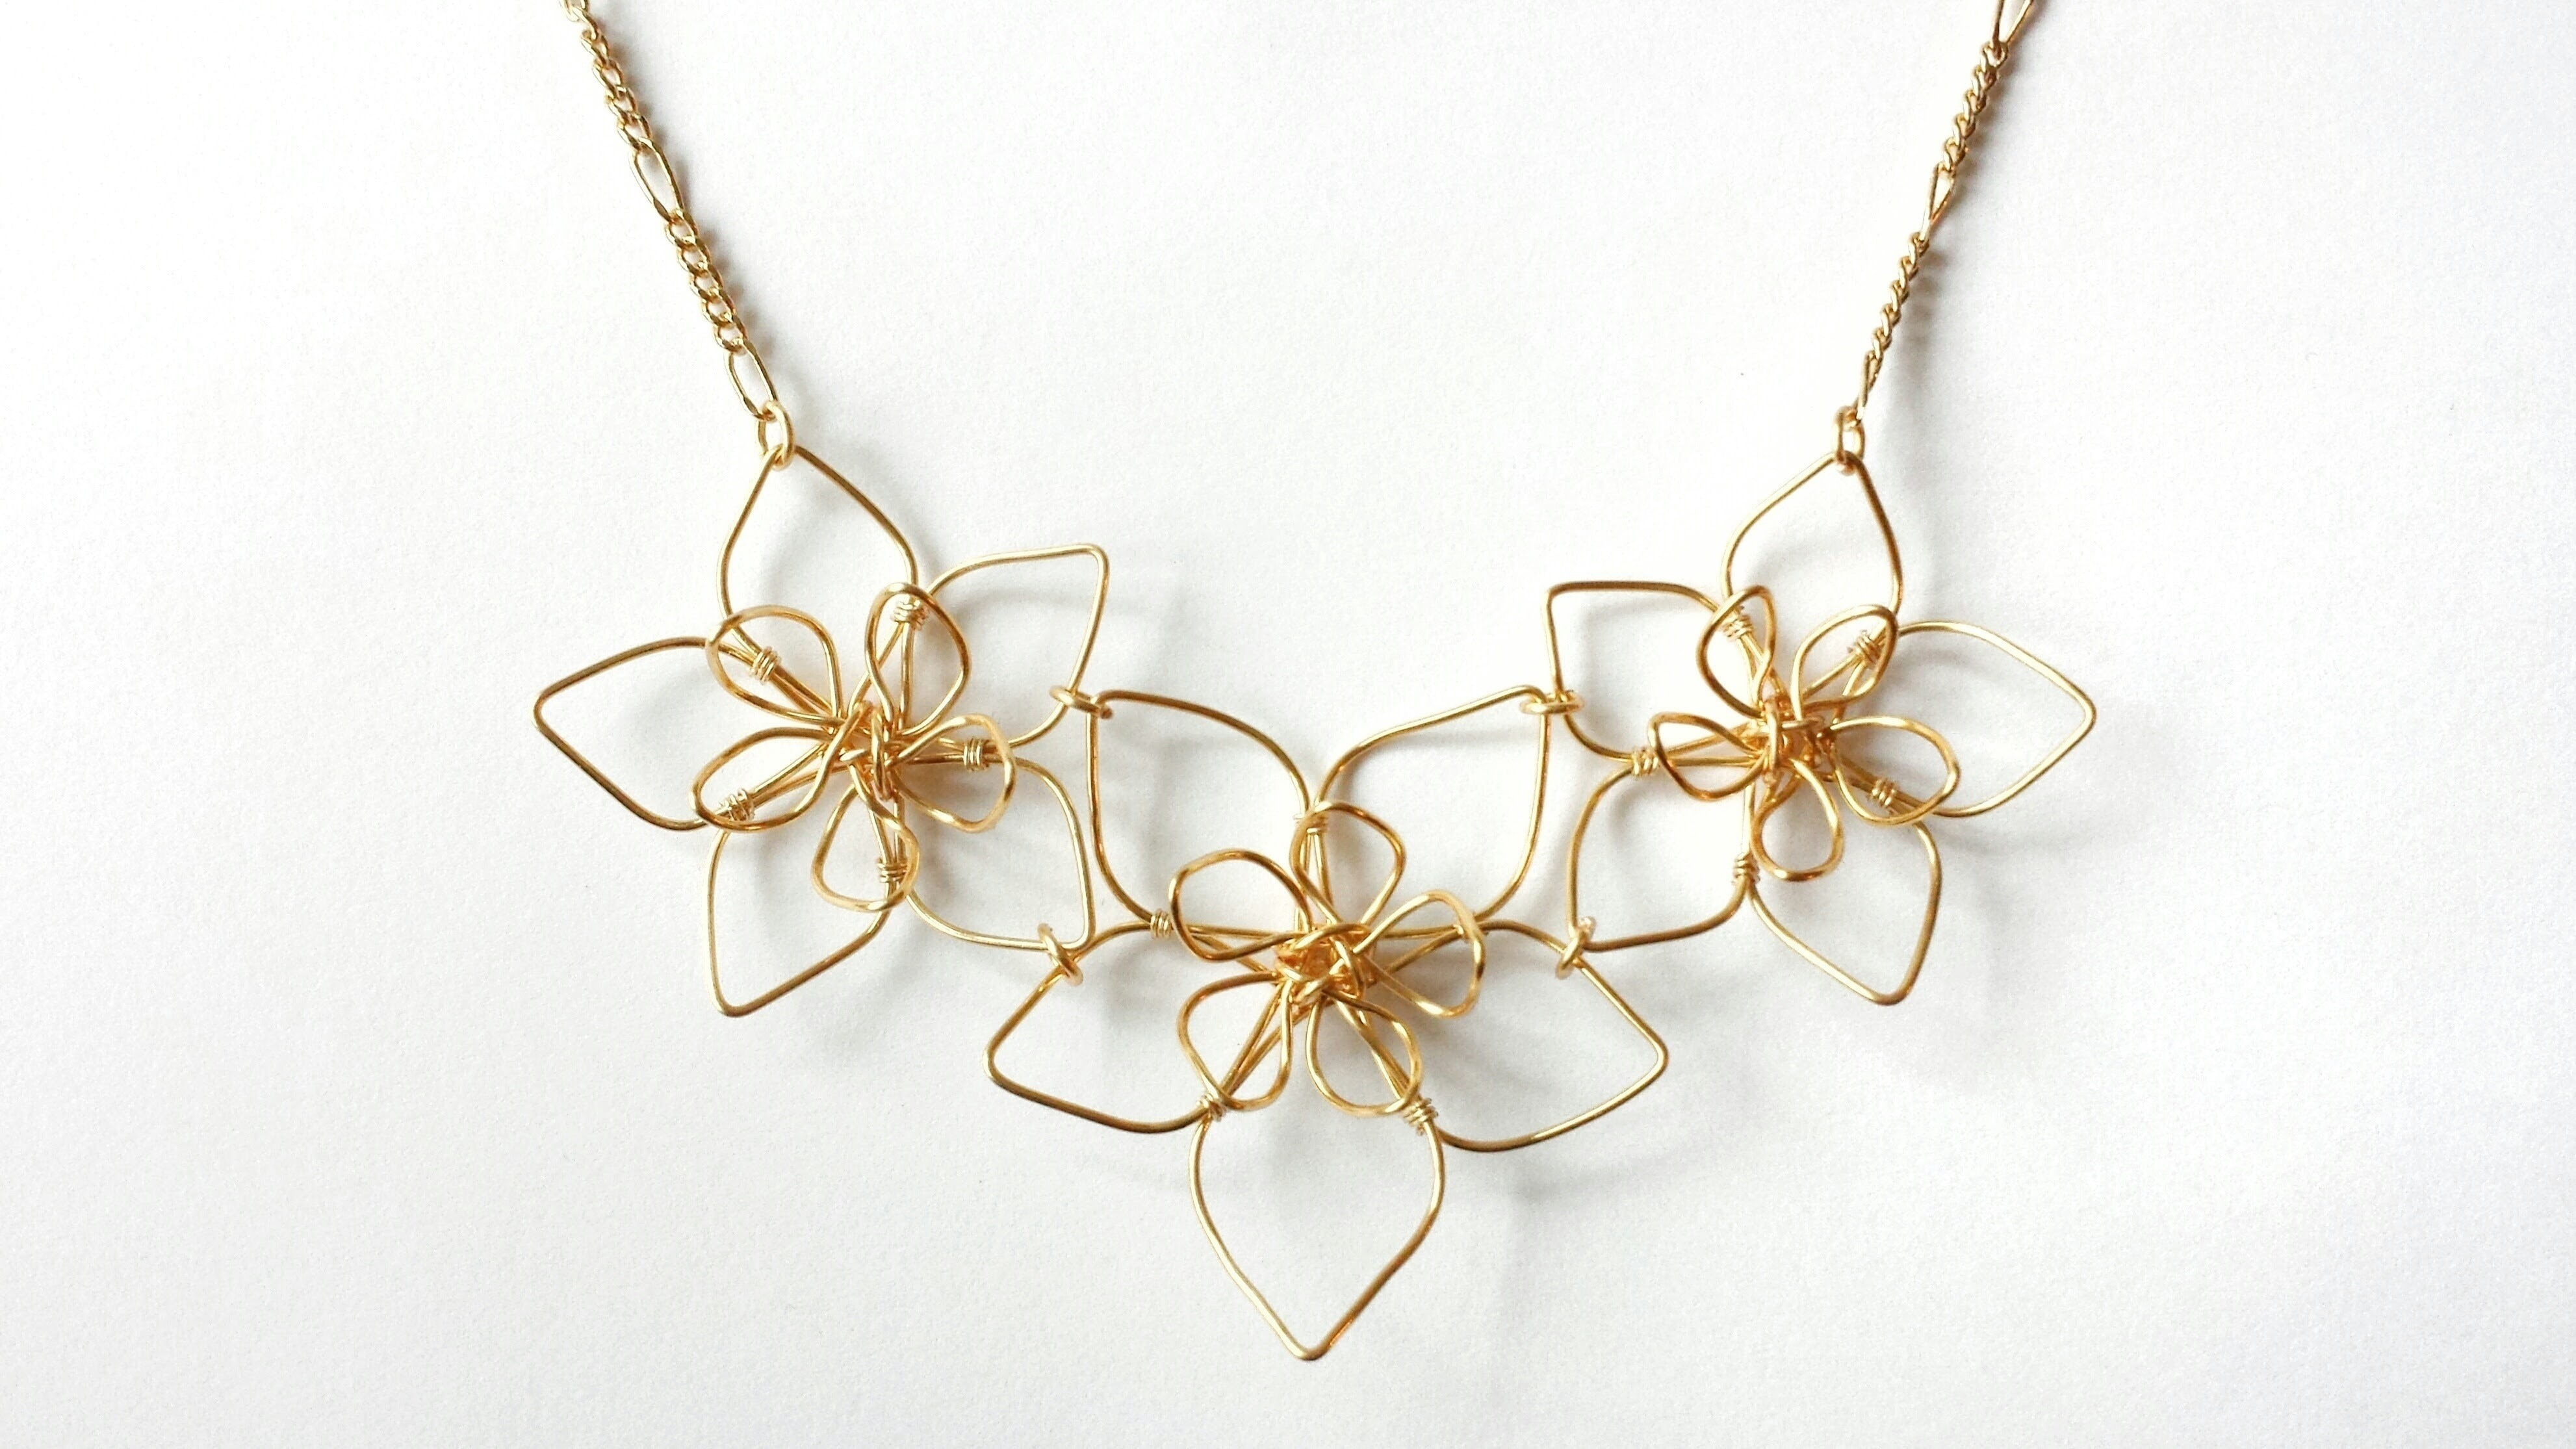 Wire Flower Necklace 183 How To Make A Wire Pendant